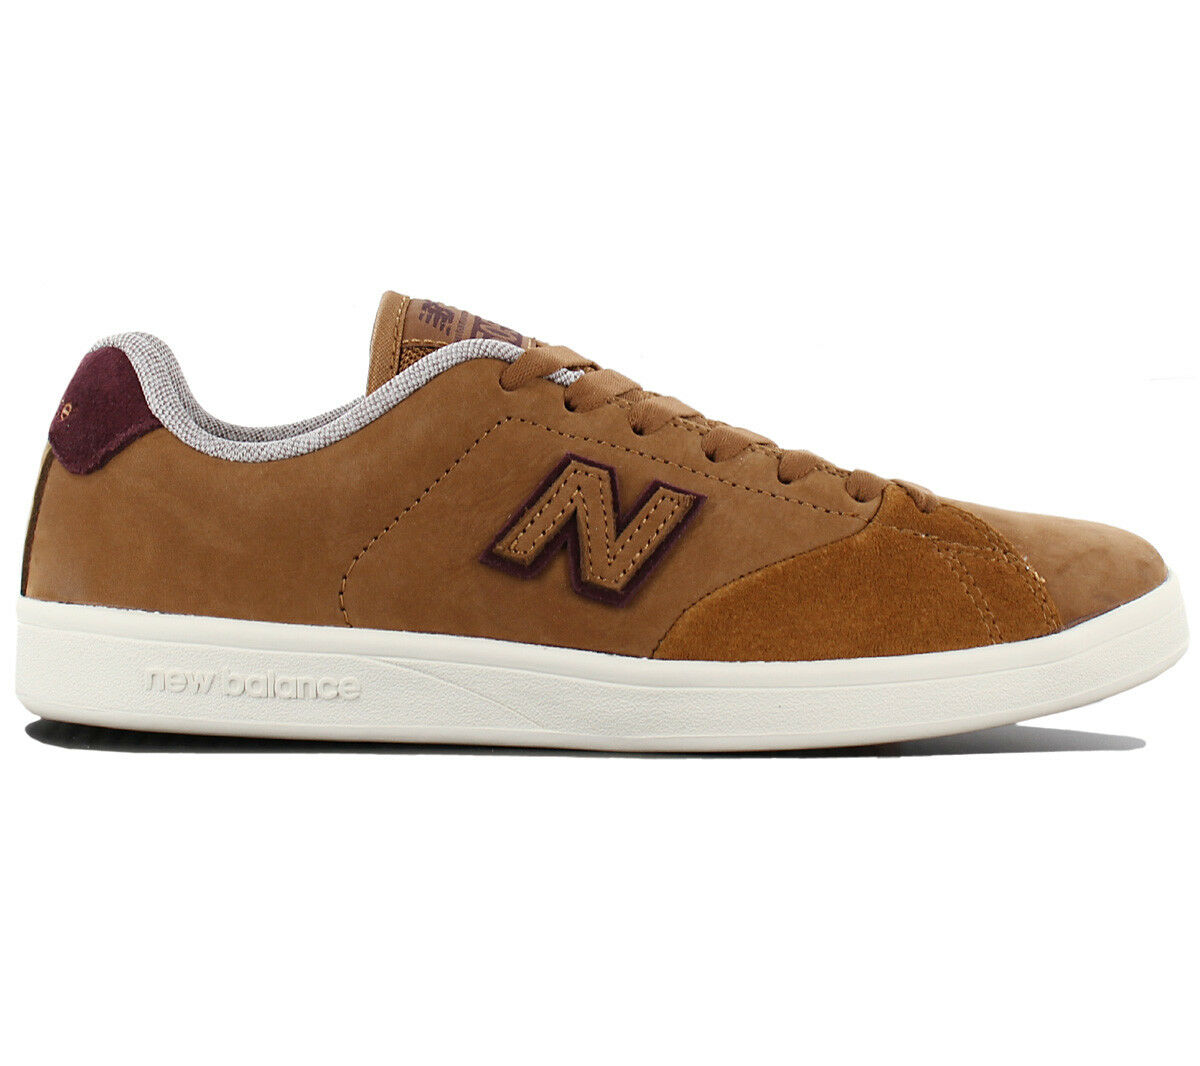 New Balance Numeric 505 Men's Sneakers [Eu 40 Us 7] Nm505cls shoes Leather New